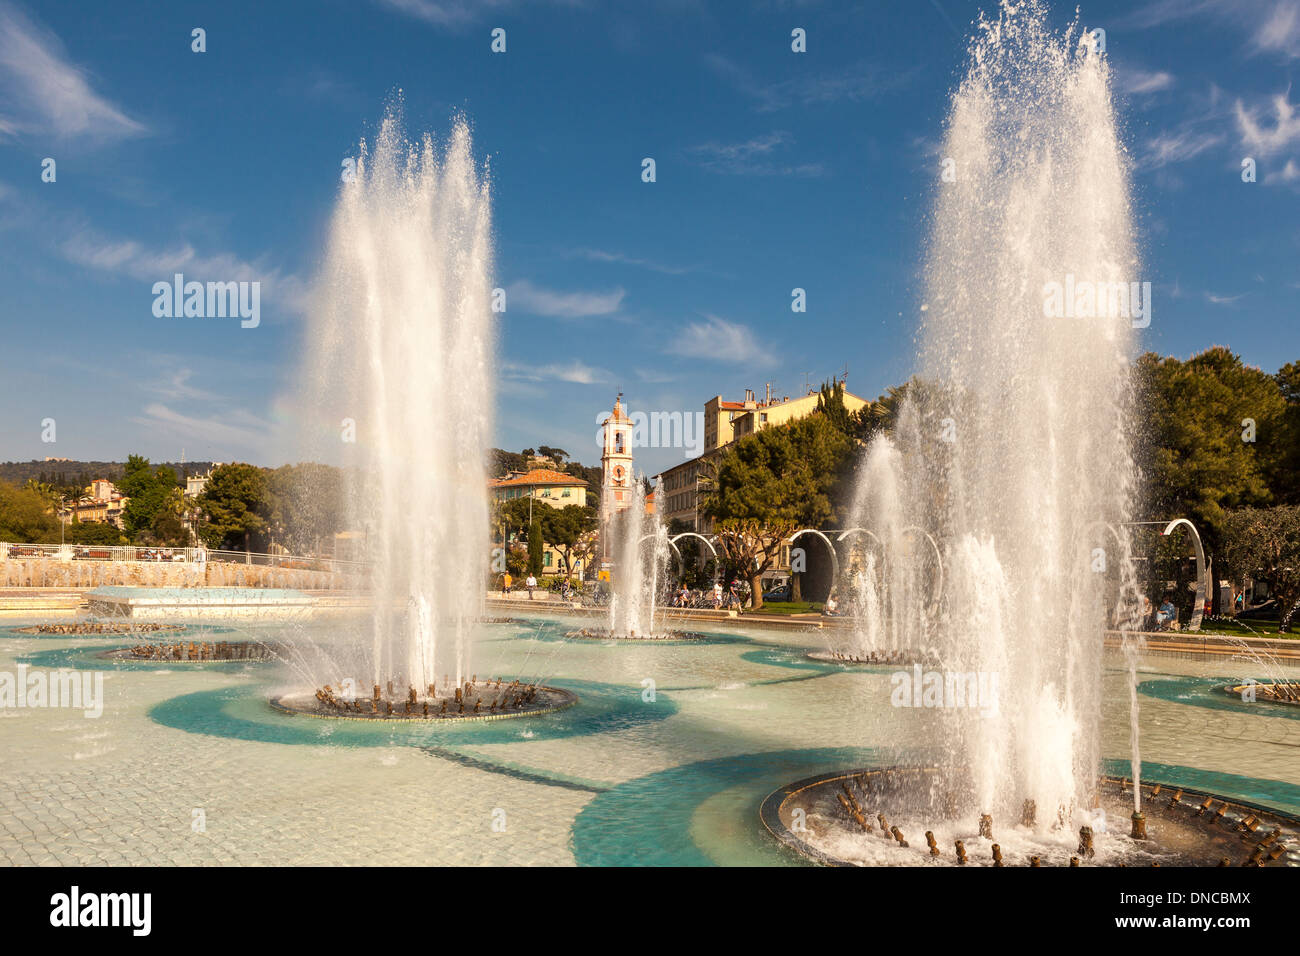 Place Massena fountains in the summer,Nice,Cote D'Azur,The French Riviera,France - Stock Image